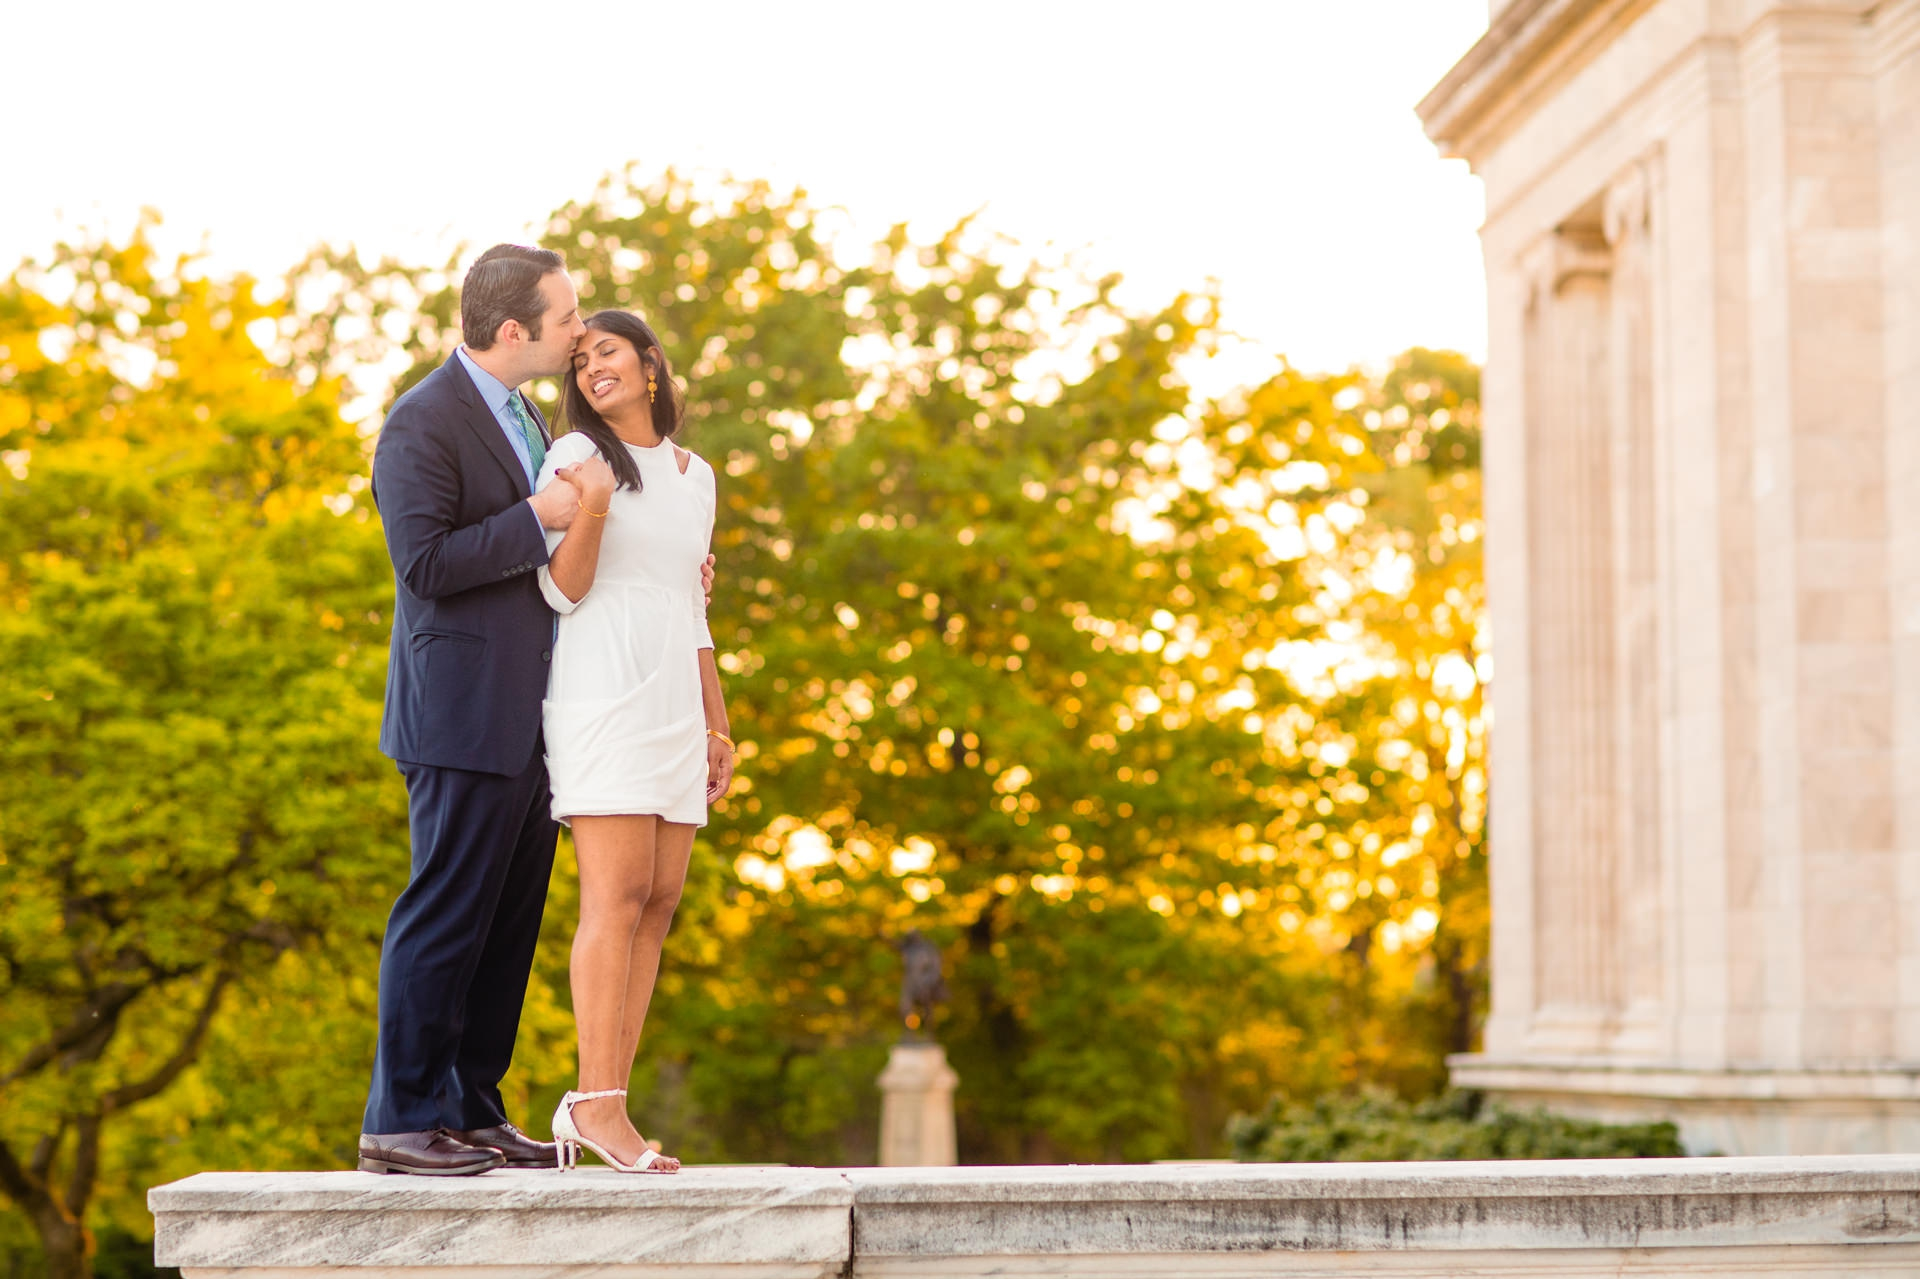 Cleveland Engagement Session at the Art Museum 14.jpg